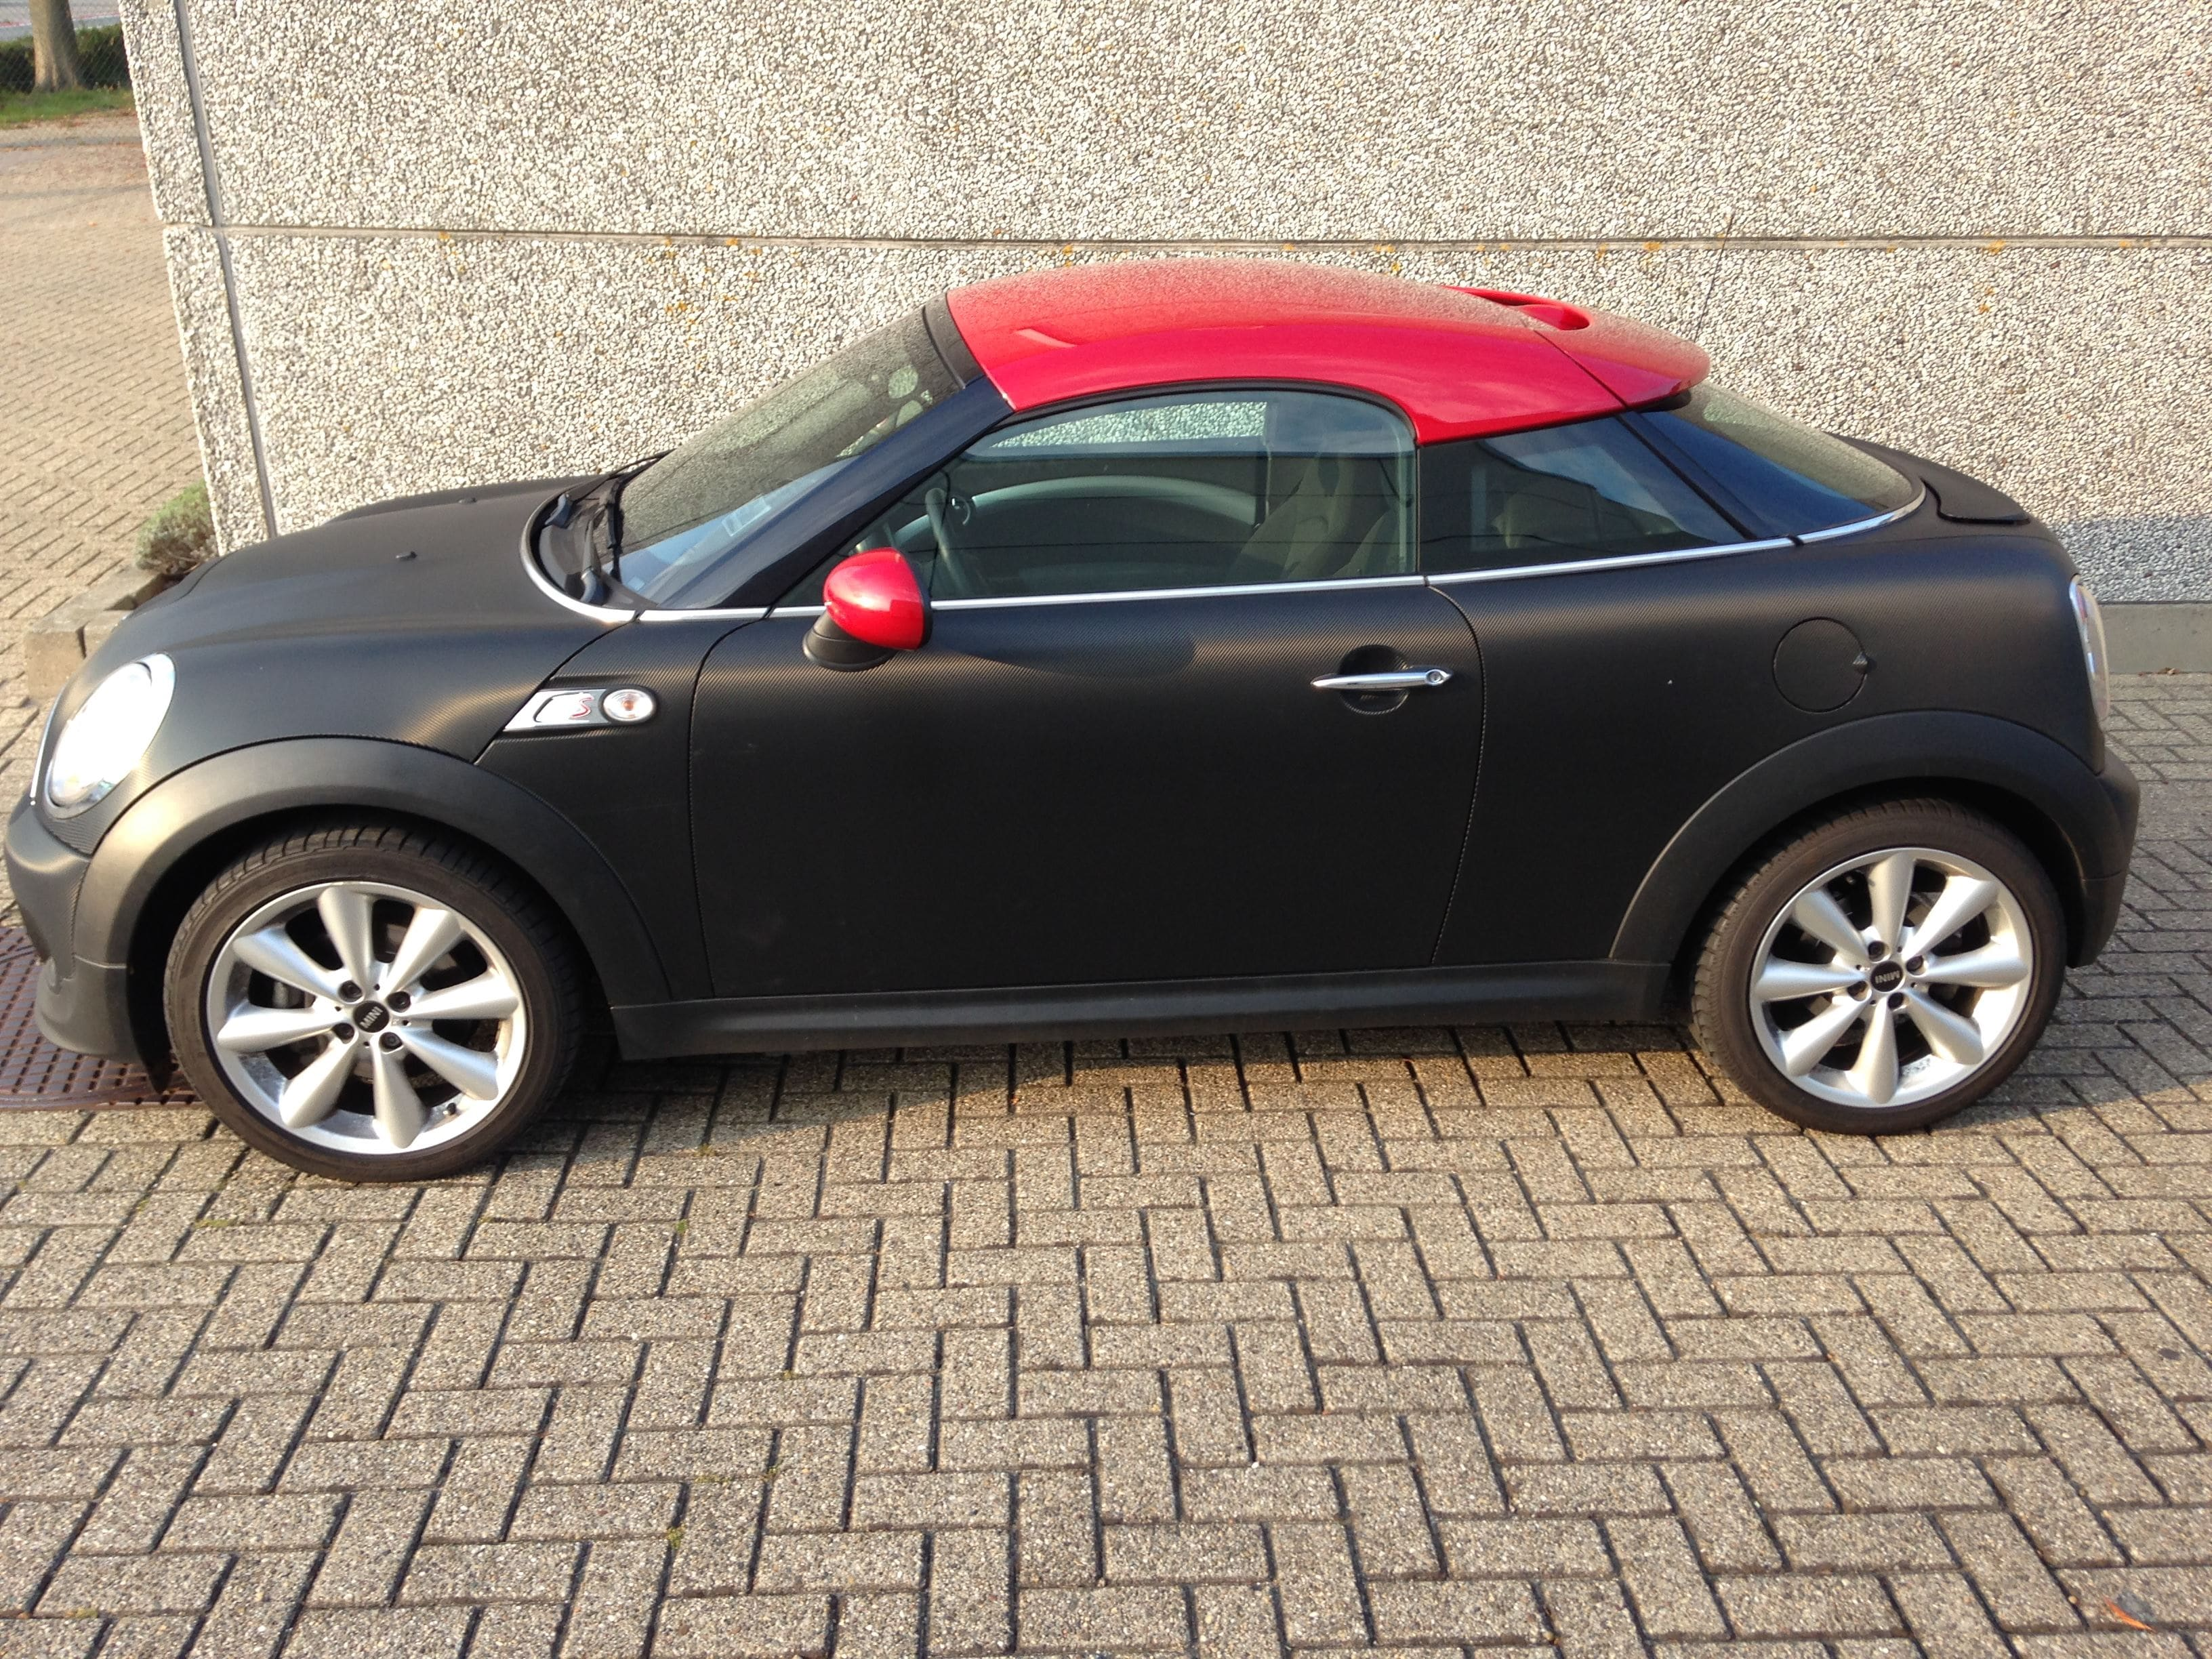 Mini Cooper Coupe in Carbon Wrap met Rode accenten, Carwrapping door Wrapmyride.nu Foto-nr:6396, ©2020